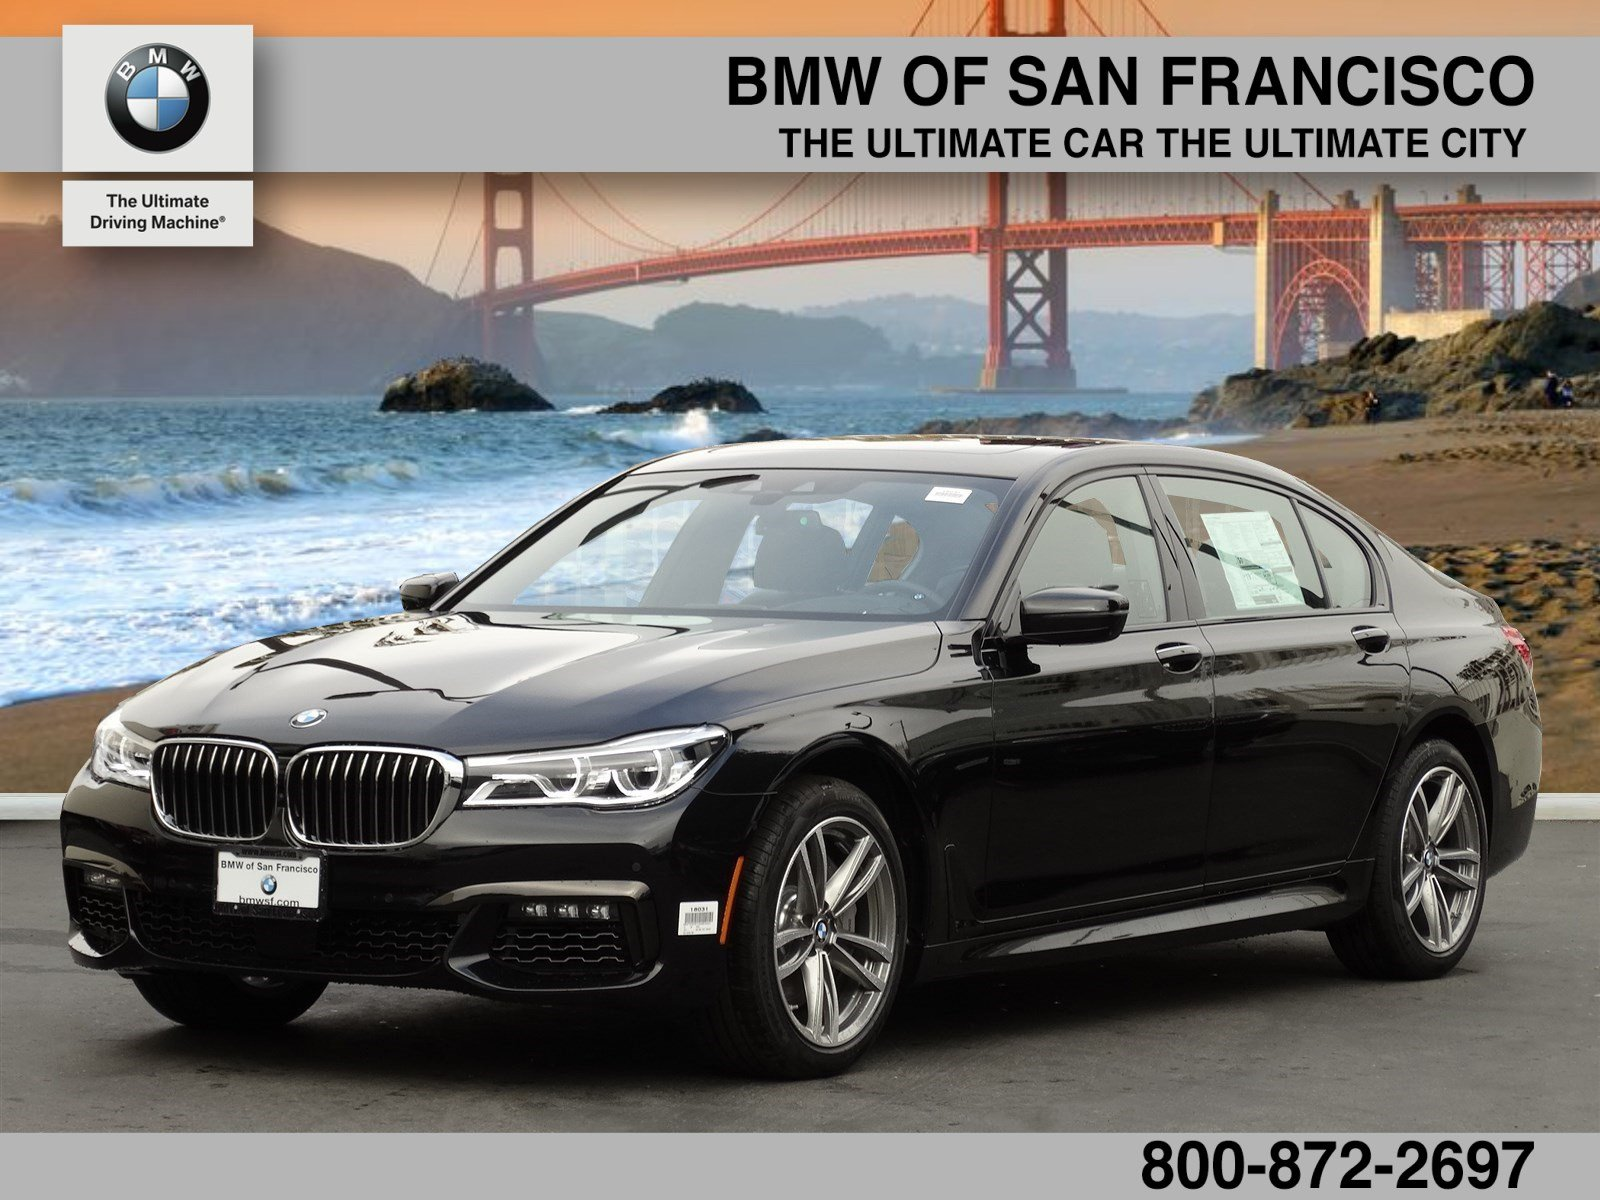 2018 bmw 750. delighful bmw new 2018 bmw 7 series 750i xdrive intended bmw 750